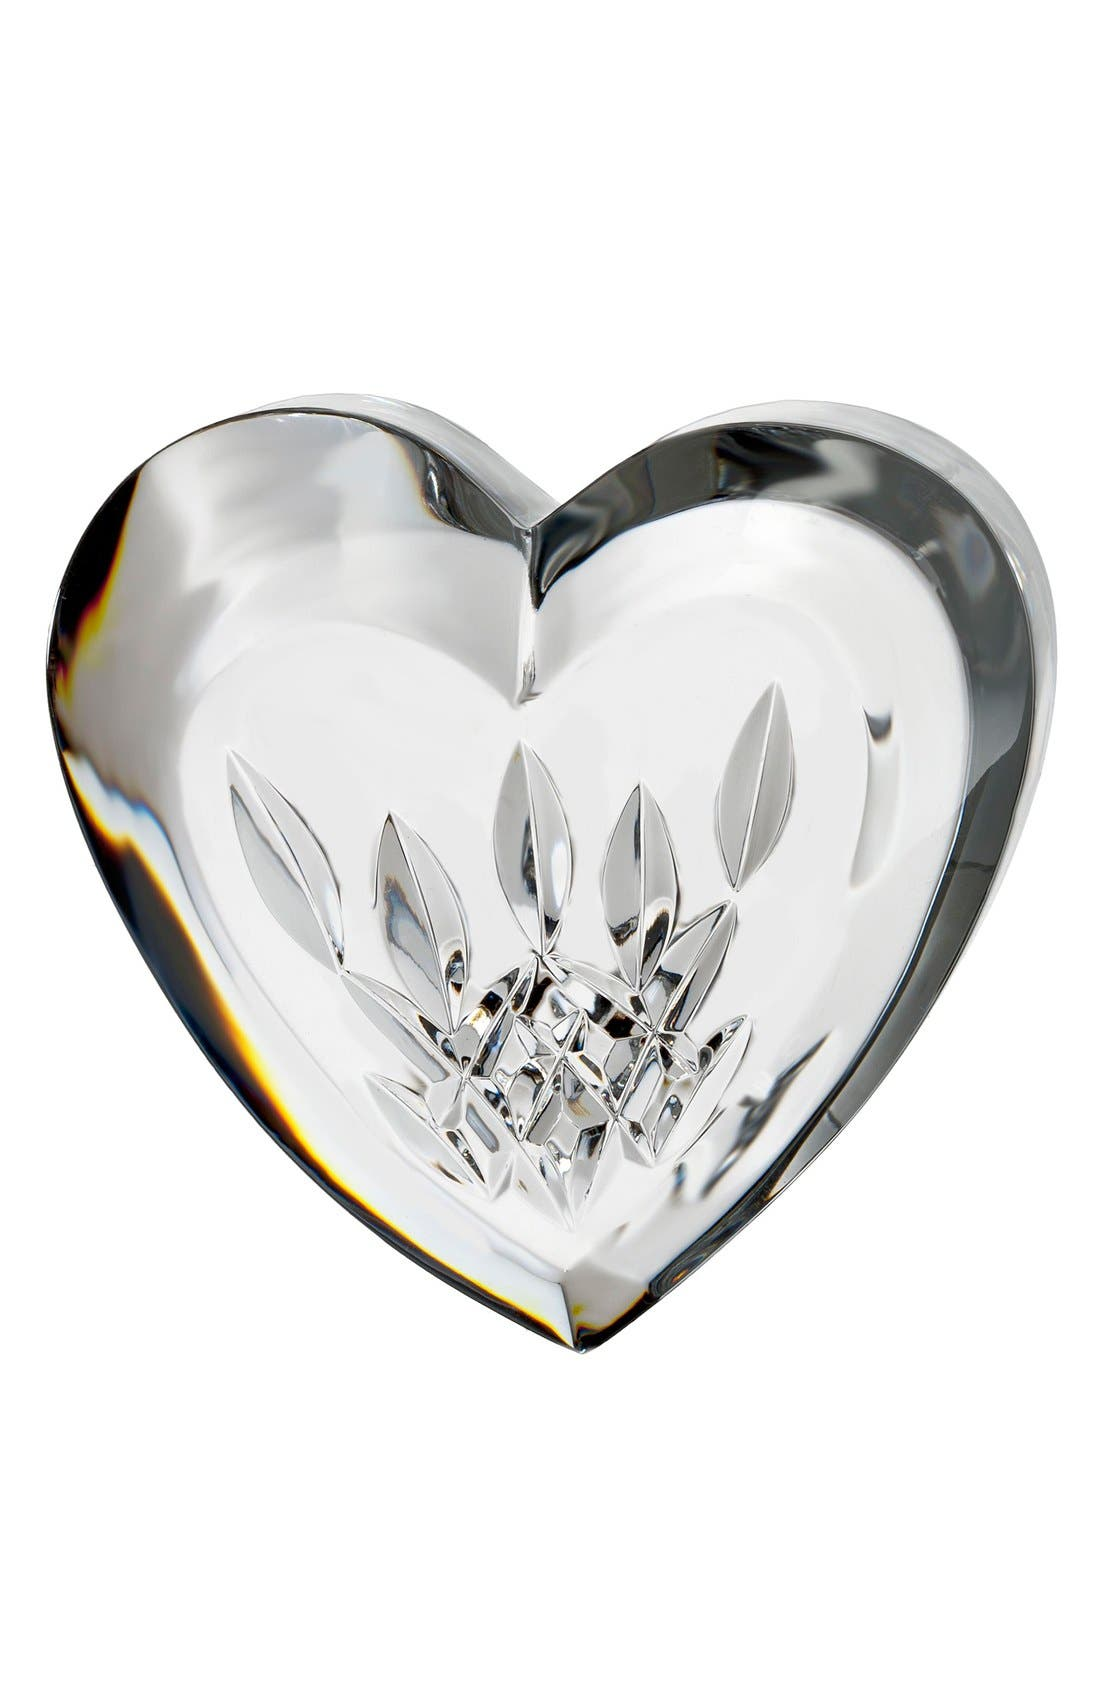 Waterford 'Lismore' Heart Lead Crystal Paperweight